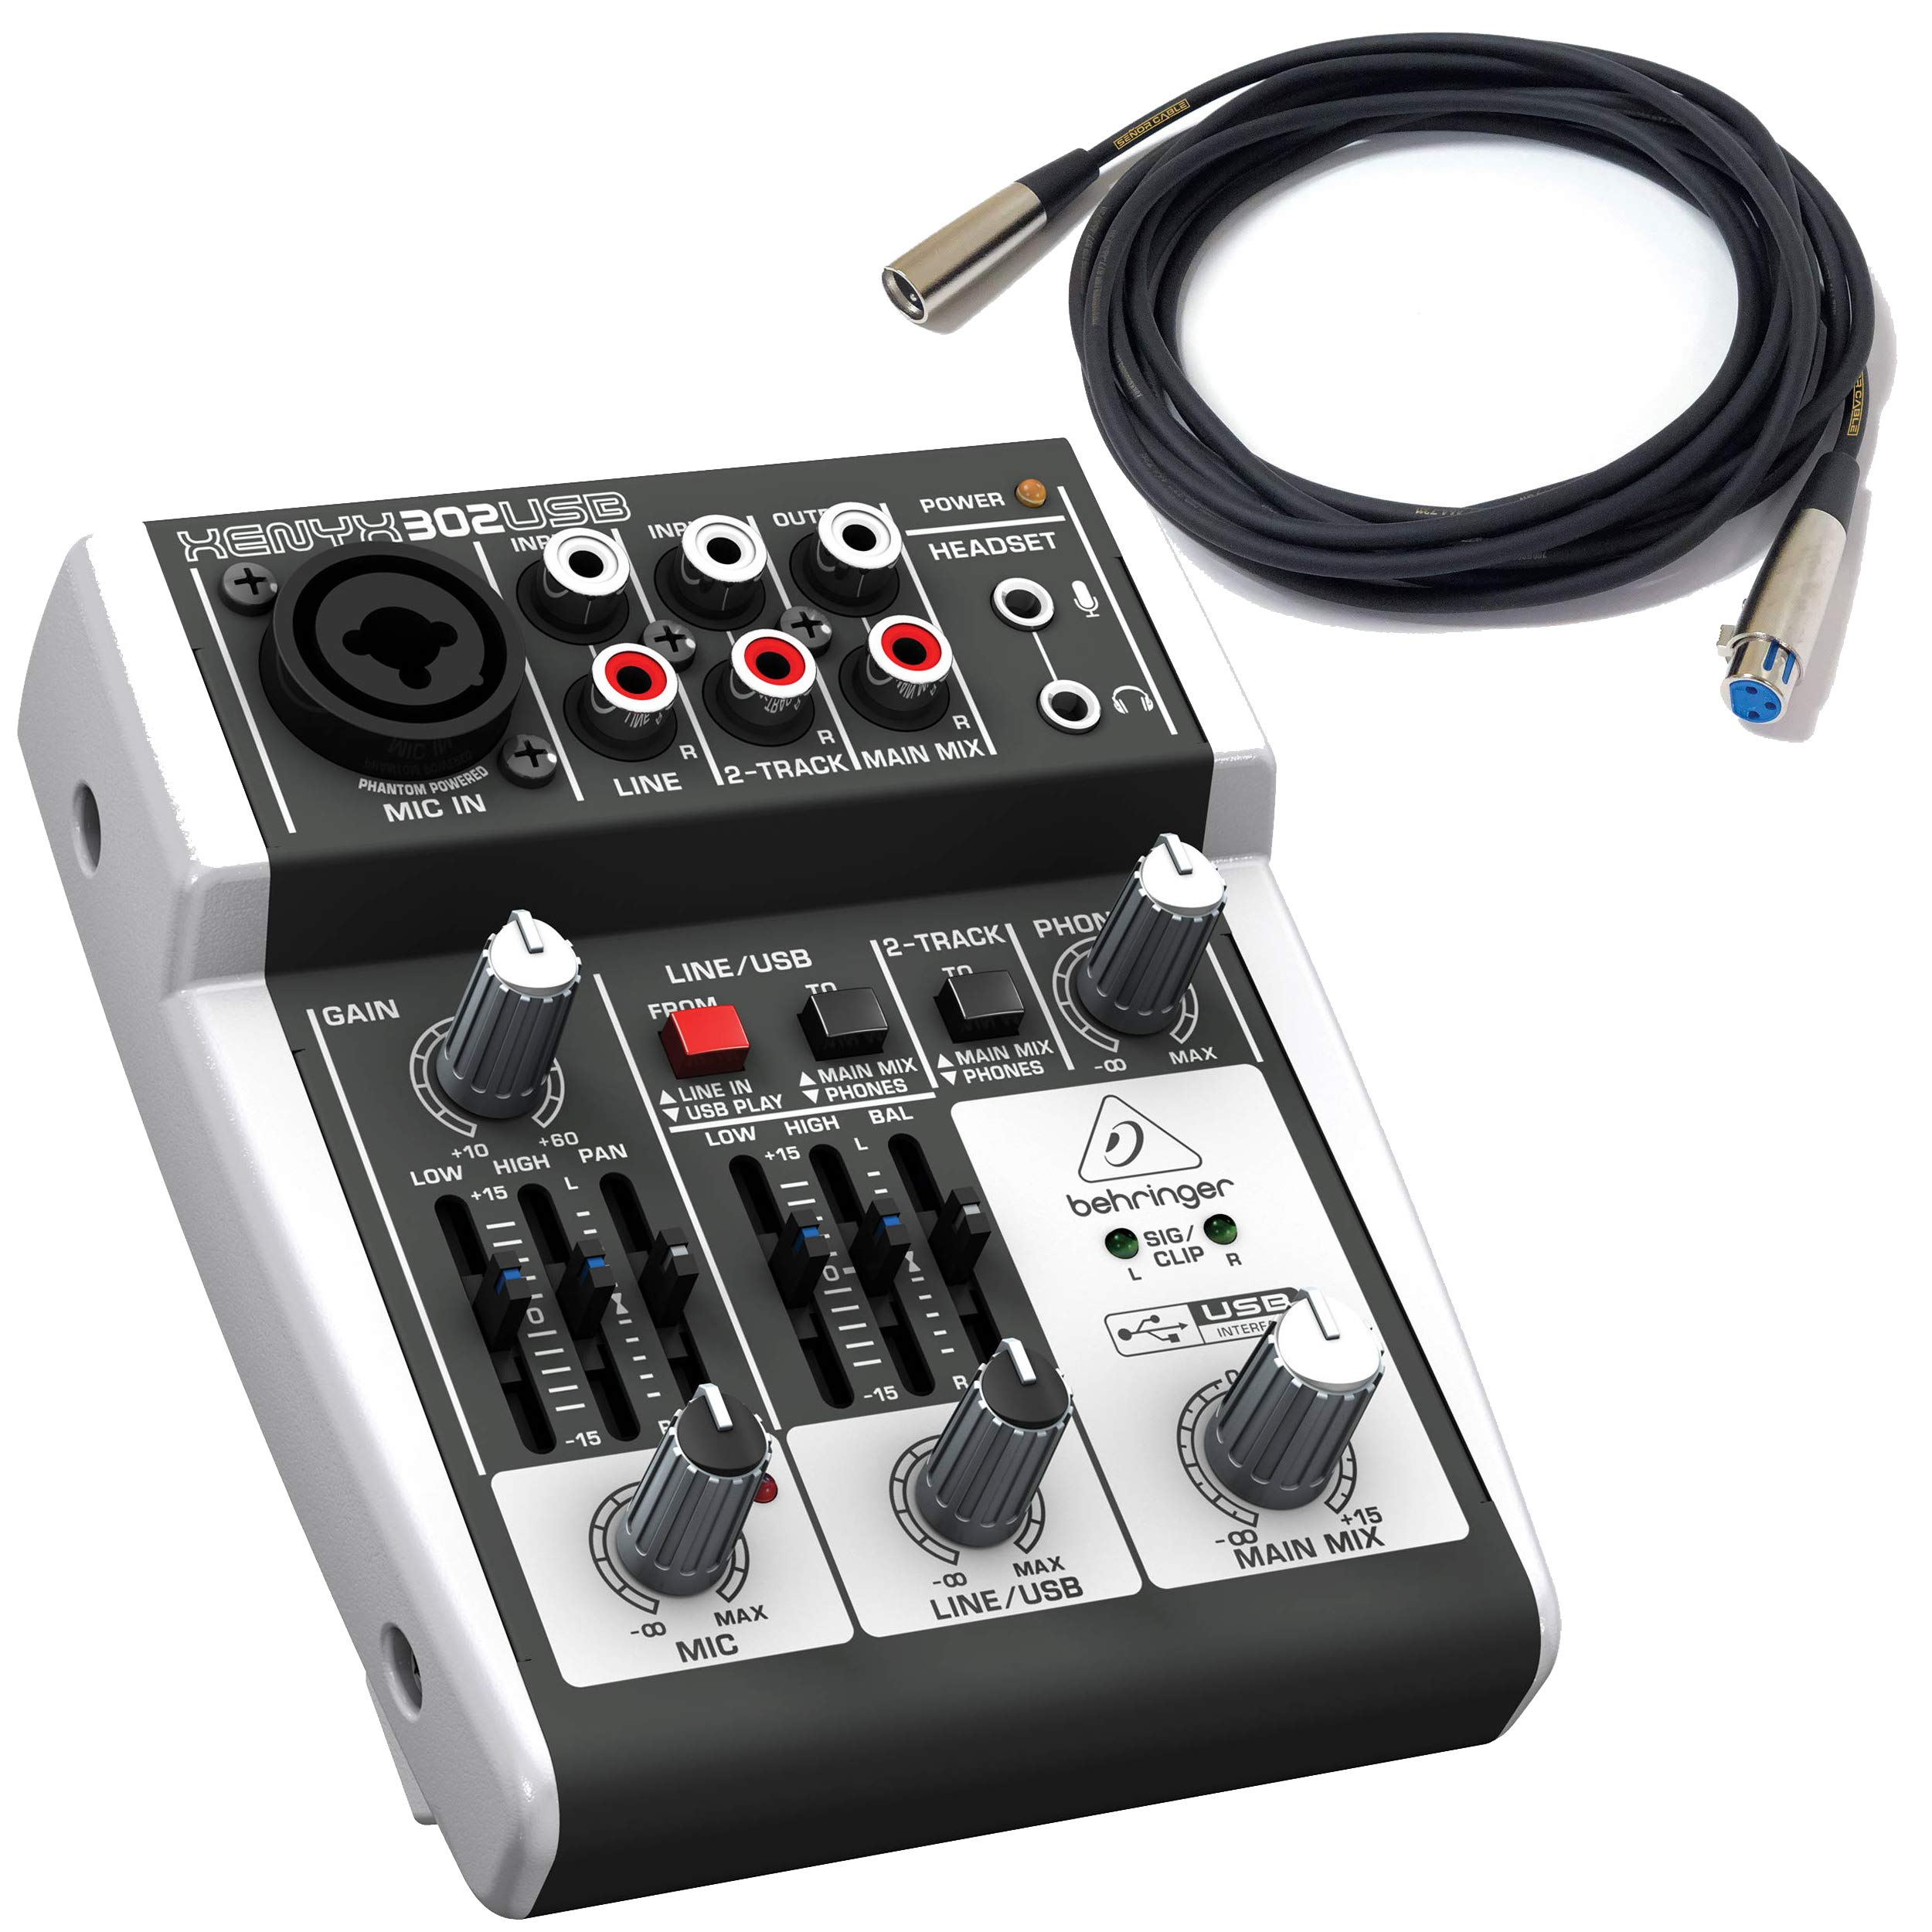 Behringer Xenyx 302USB Mixer 3 Channel with USB Xenyx Mic Preamp, One Stereo Channel, 2-band EQ and USB I/O BUNDLE with Senor 20' XLR Microphone Cable